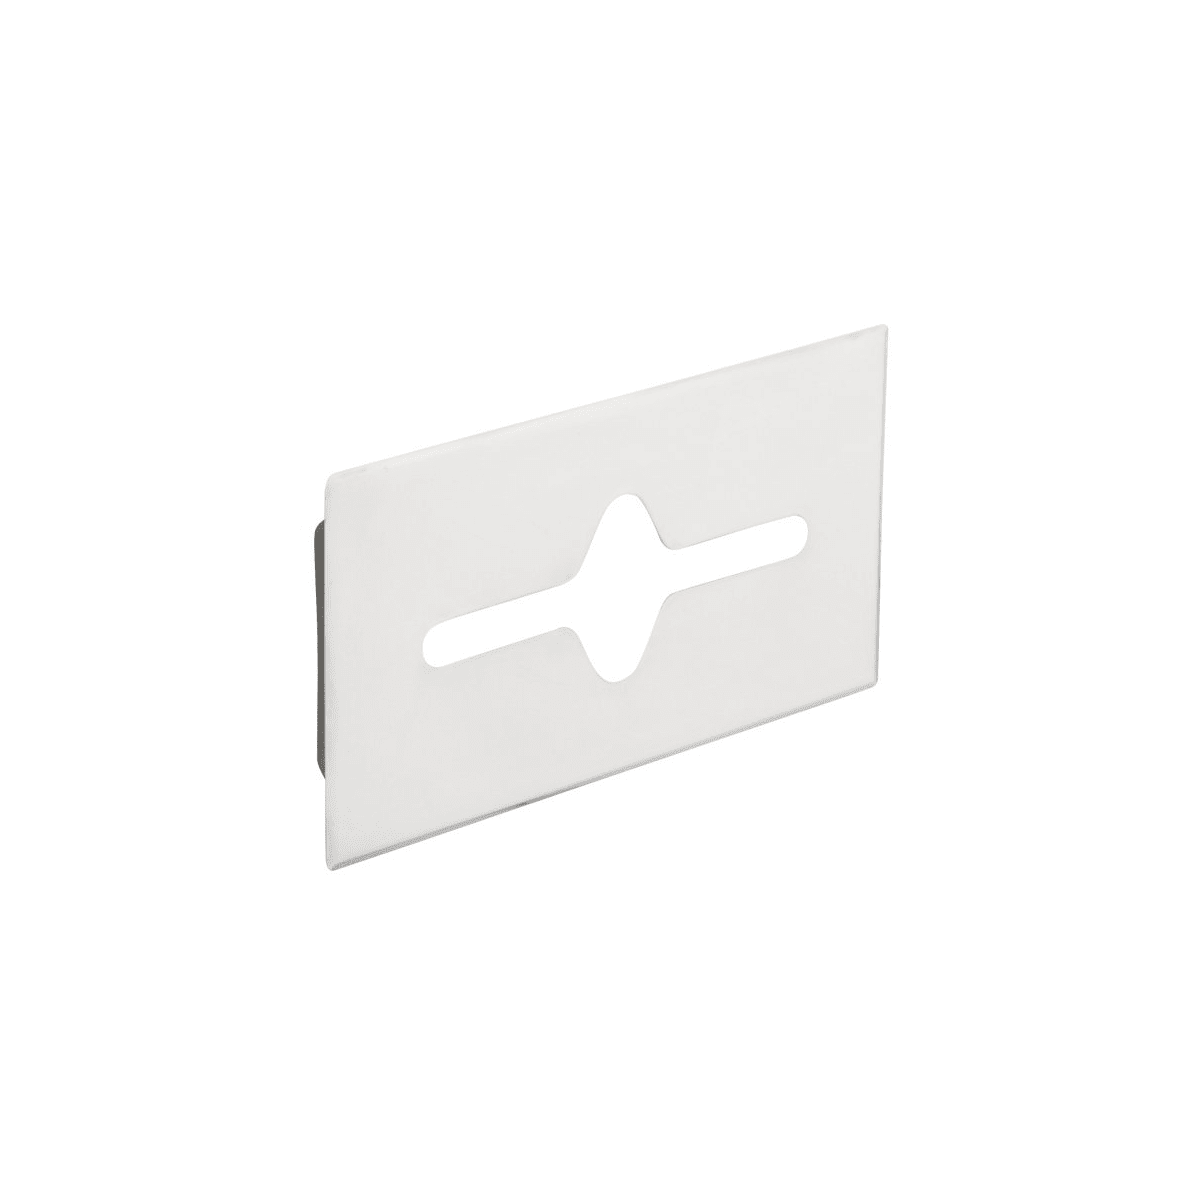 Franklin Brass E930C Snap-On Cover Liberty Hardware